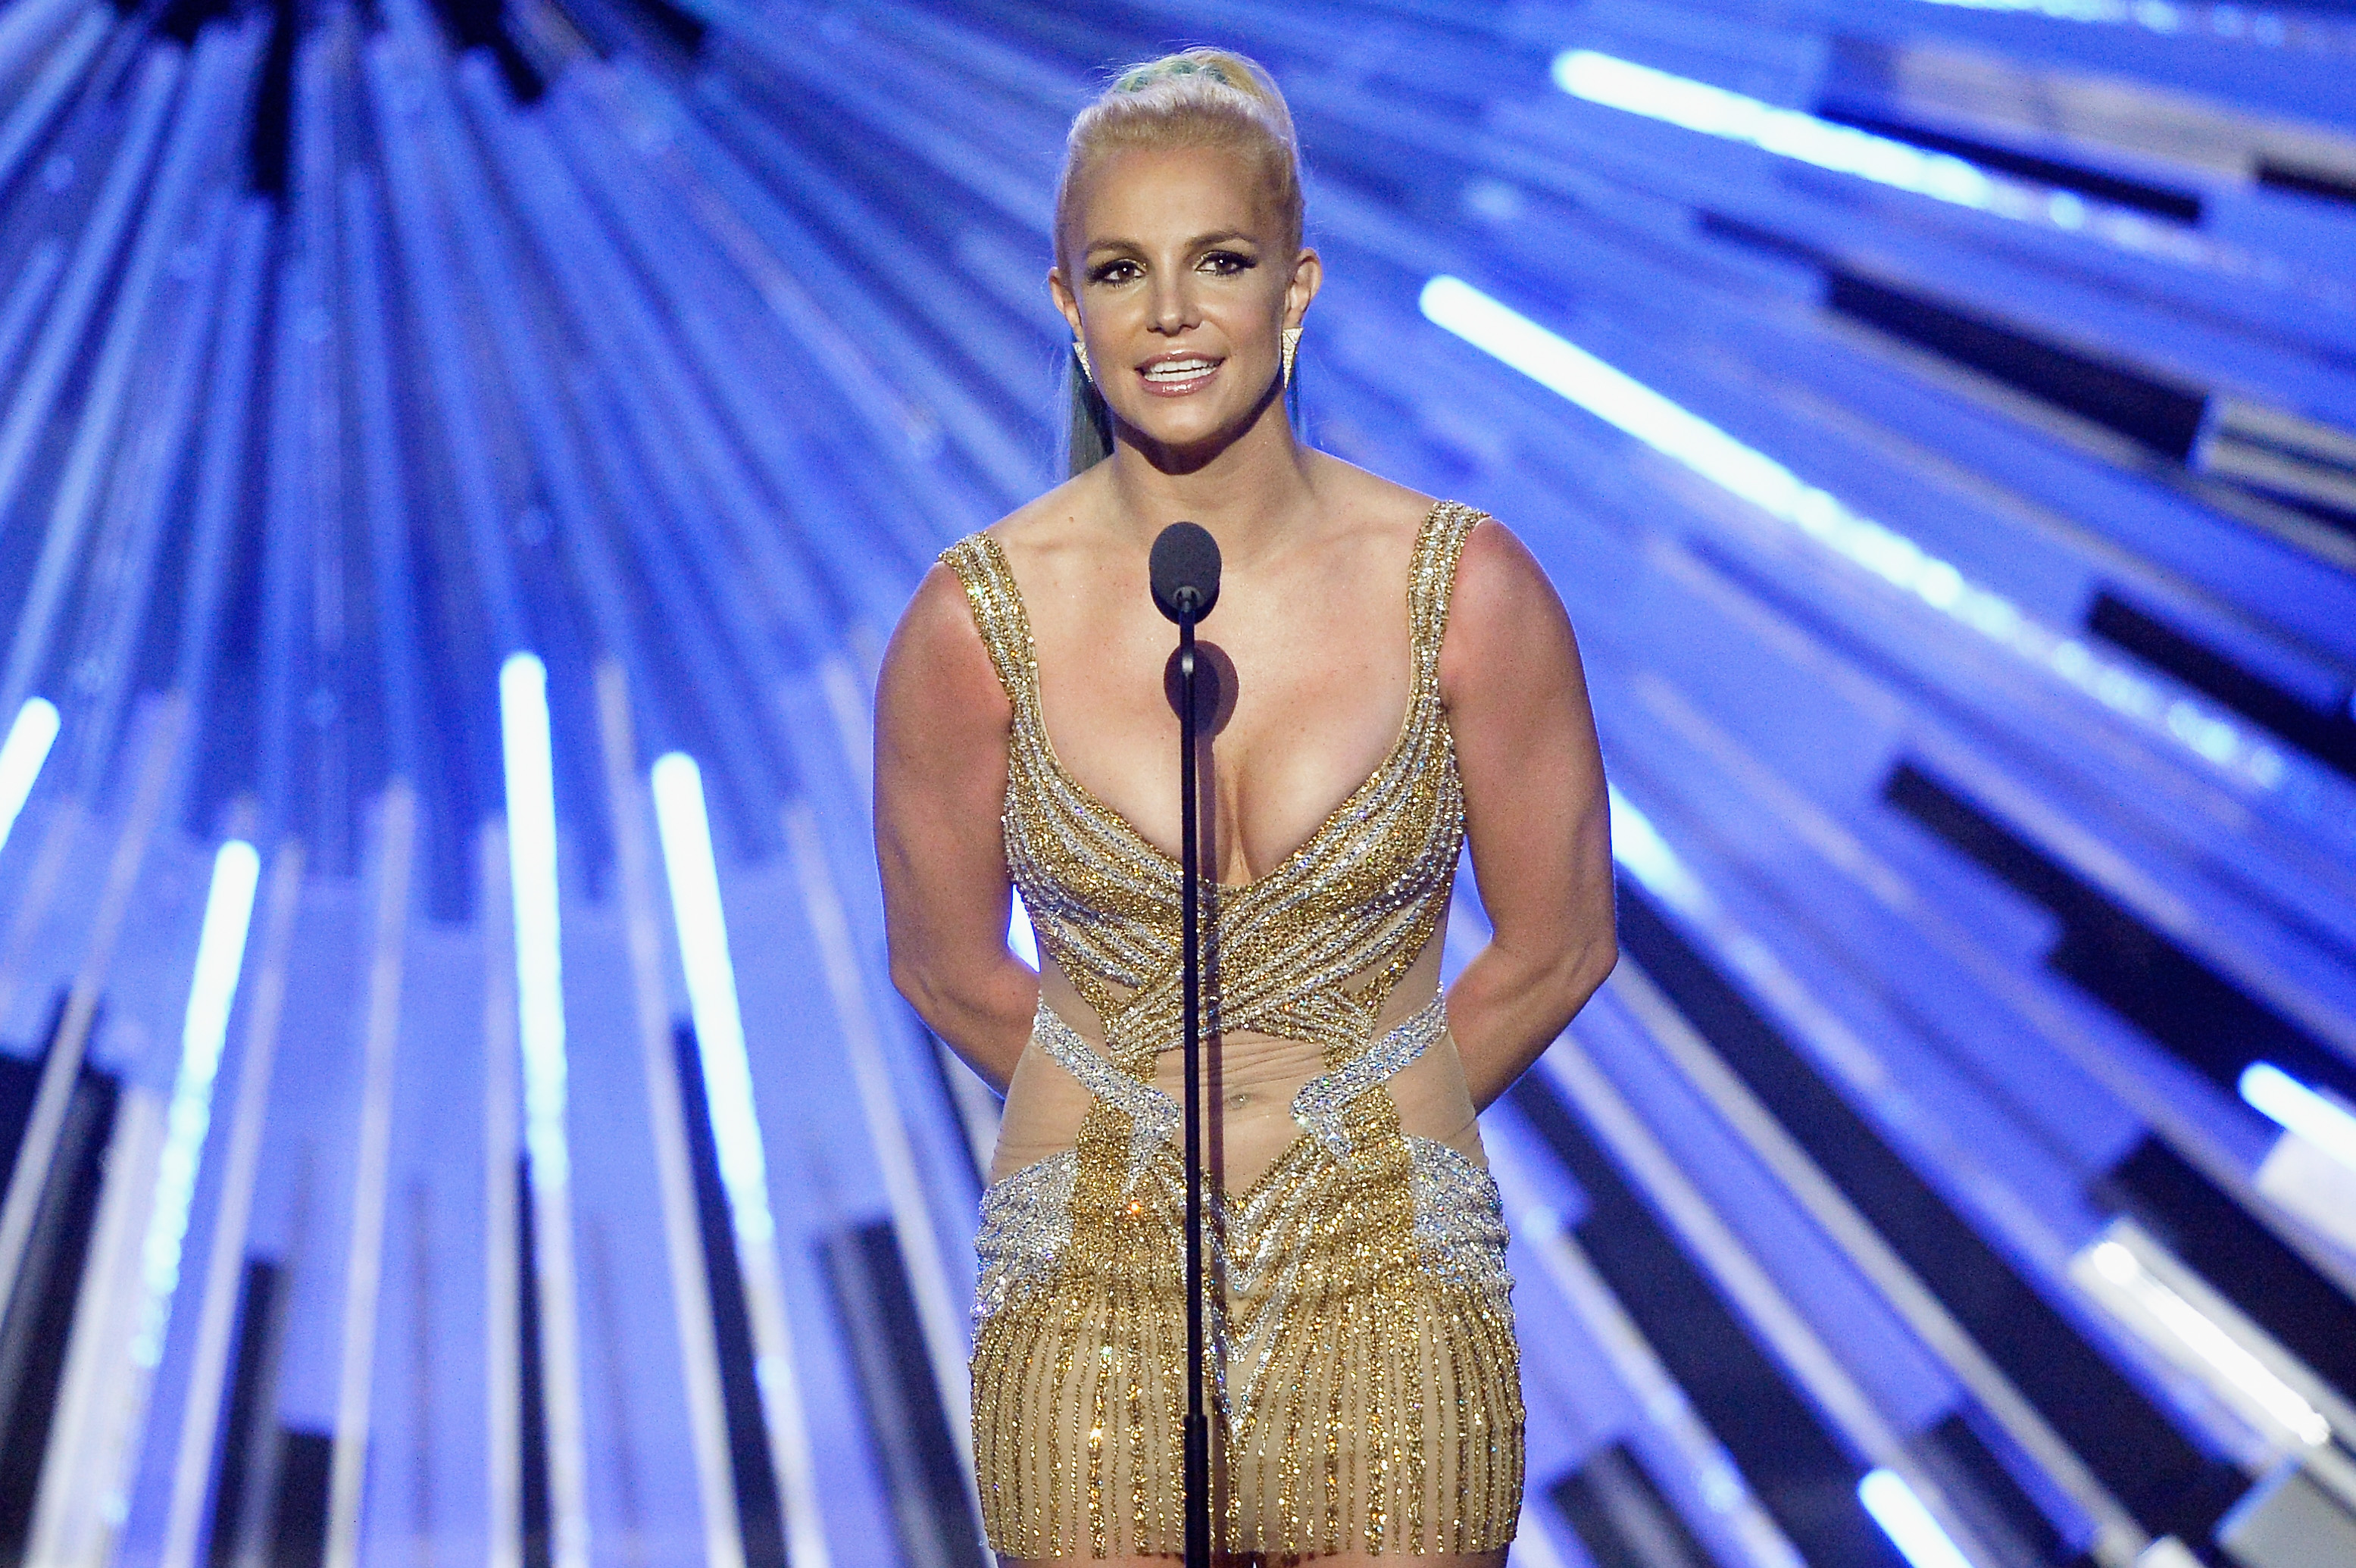 Britney Spears speaks onstage during the 2015 MTV Video Music Awards at [f500link]Microsoft[/f500link] Theater on August 30, 2015 in Los Angeles, California. (Photo by Kevork Djansezian/Getty Images)